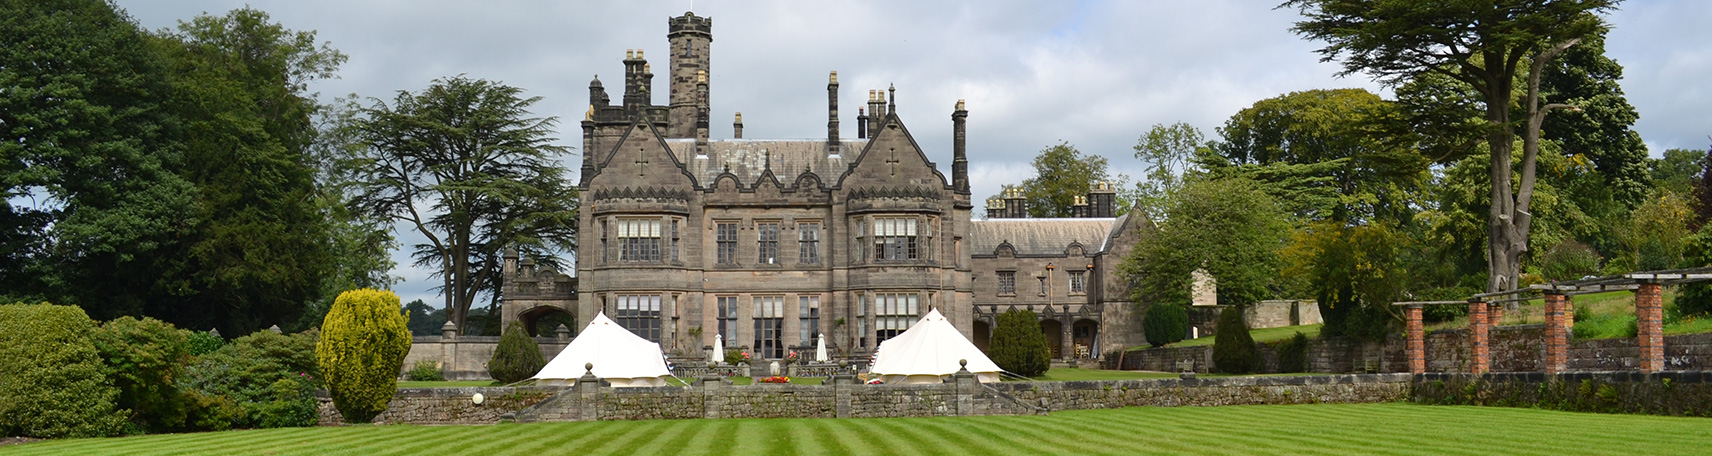 Large castle with bell tents for a bell tent wedding